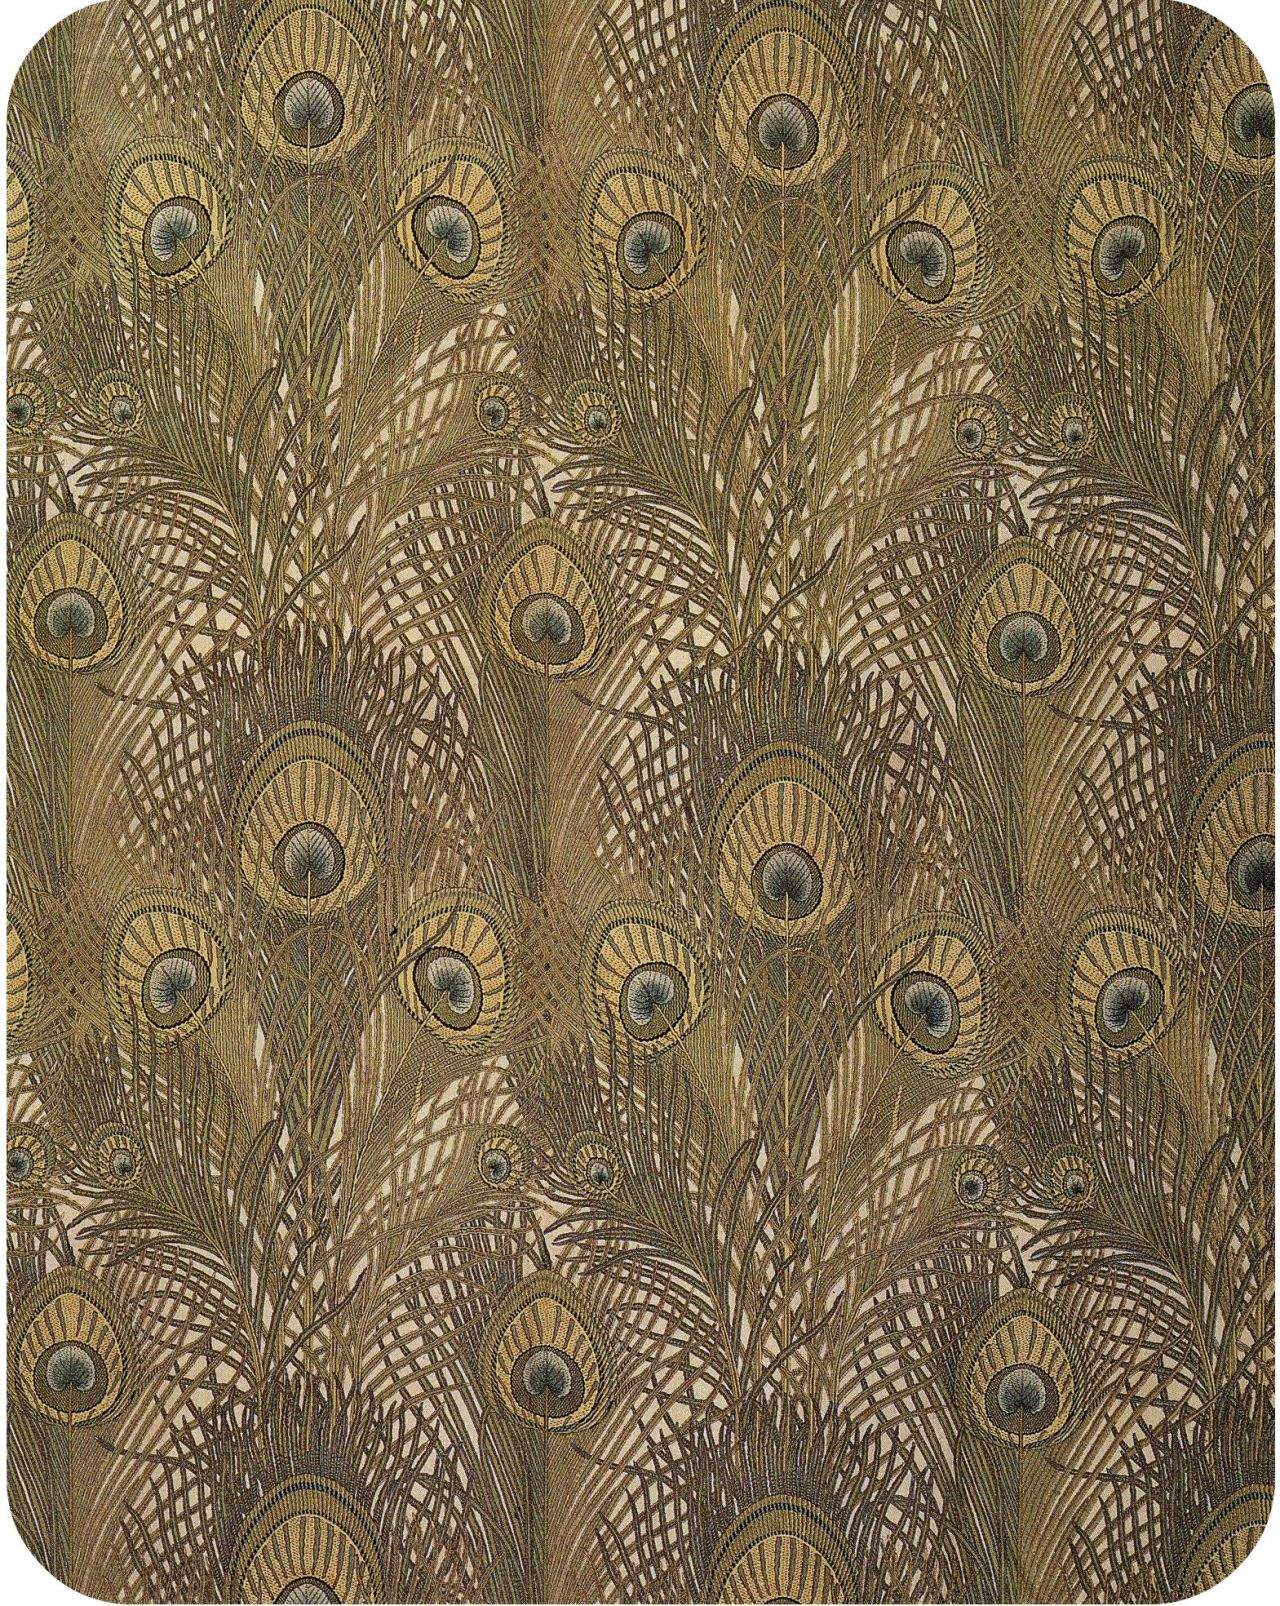 Peacock print (1884), designed by Arthur Silver for Liberty from Textile Designs by Susan Meller and Joost Elffers via